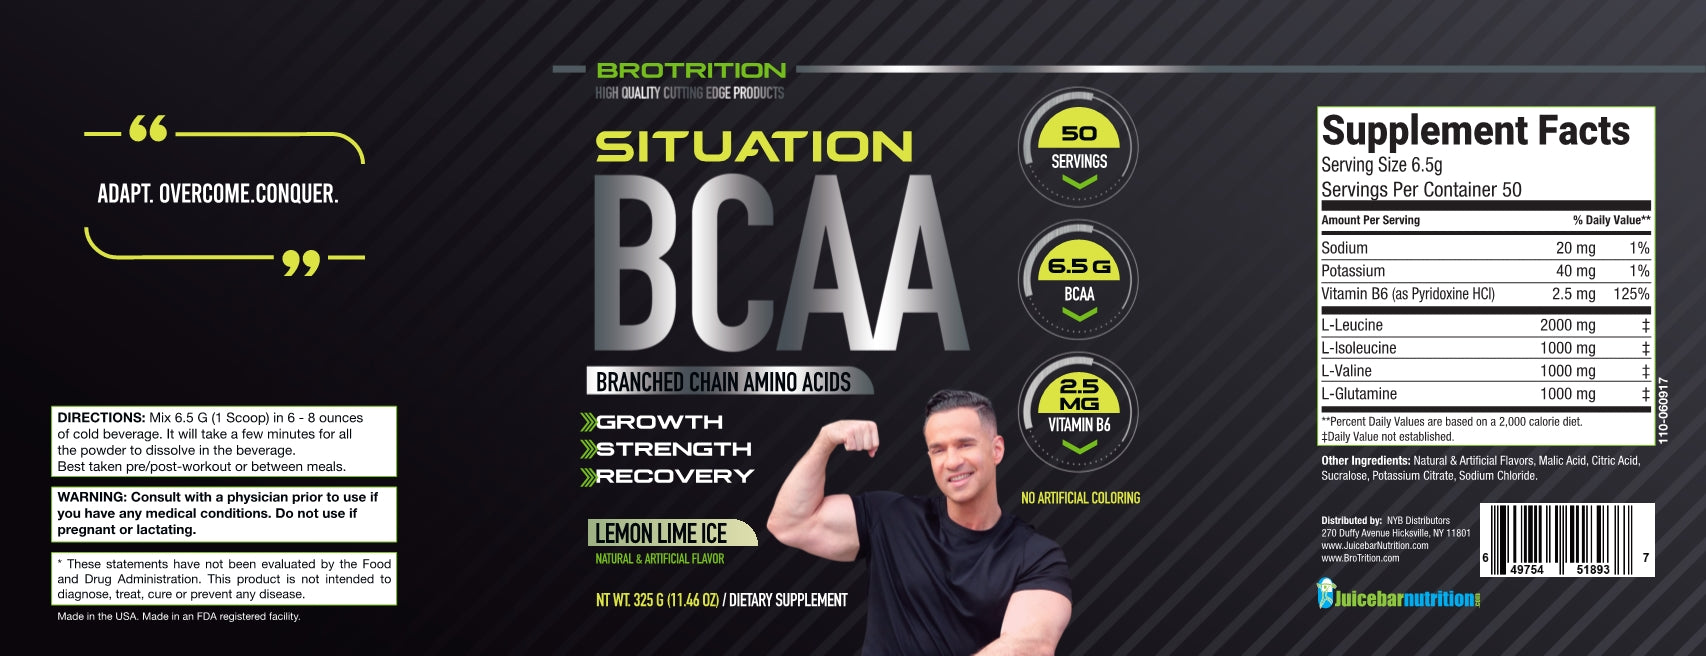 BCAA Lemon Lime Ice label